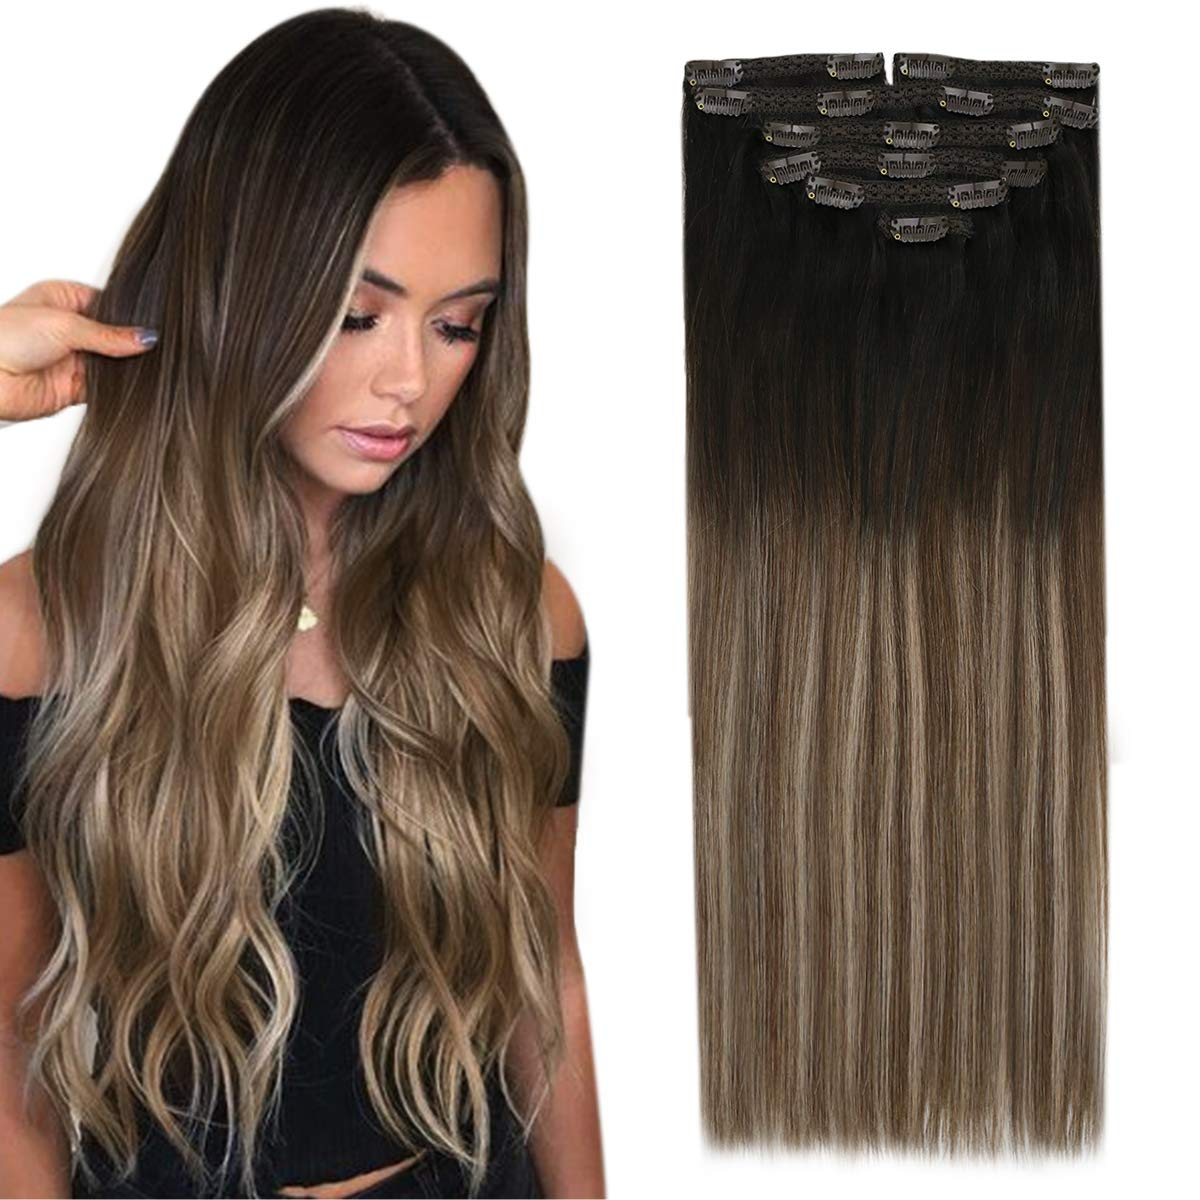 Clip in Human Hair Extensions Natural Black Ombre Brown Mix Ash Blonde  Balayage Clip on Extensions Remy Human Hair Double Weft 12inch 12PC 12G